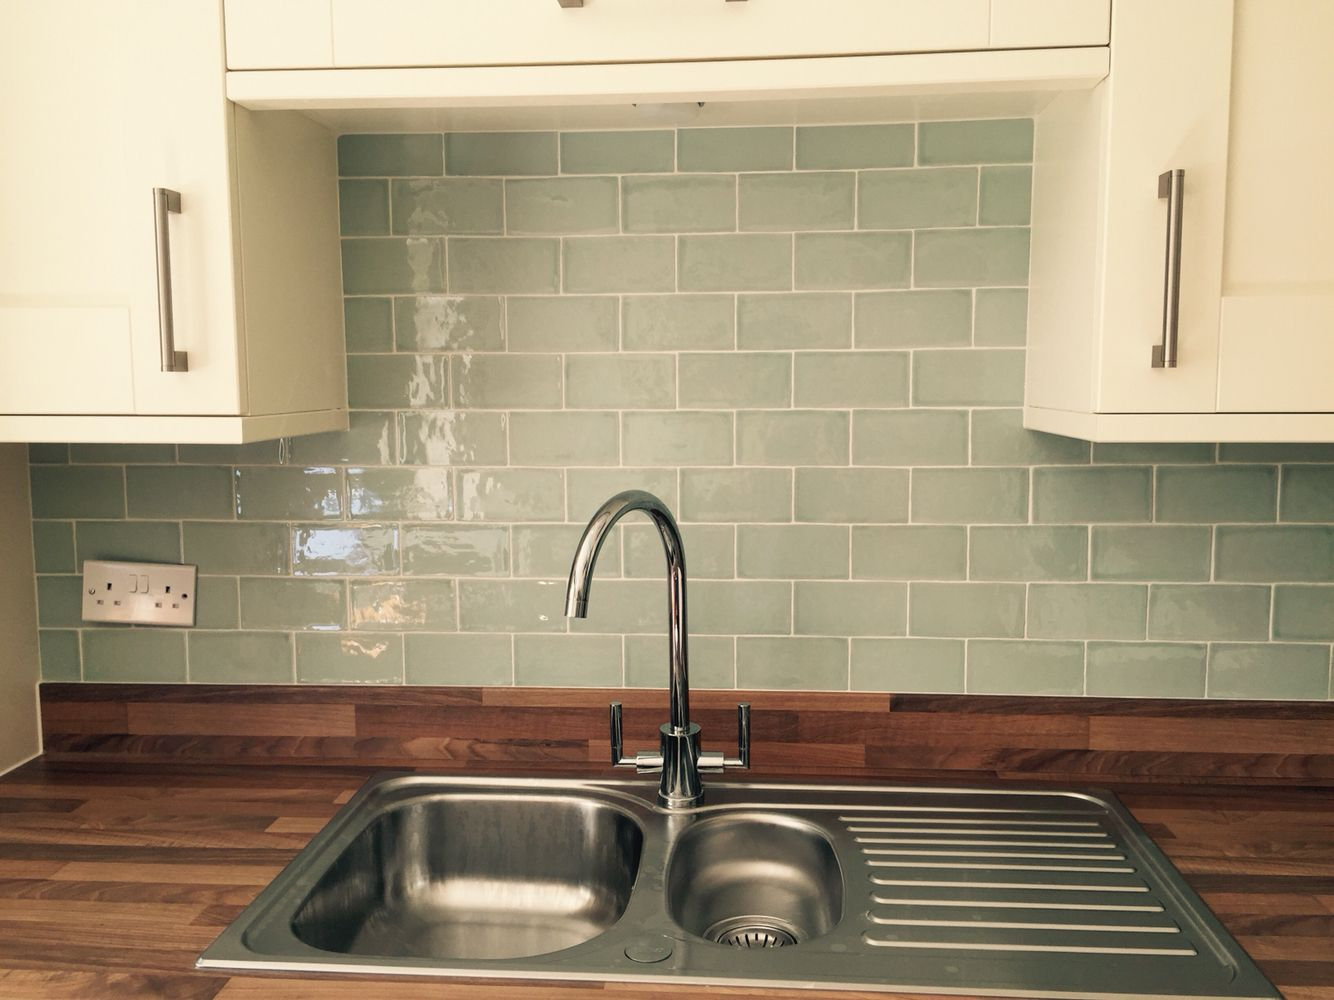 Kitchen Tiles Laura Ashley laura ashley eau de nil tile splashback | kitchen | pinterest